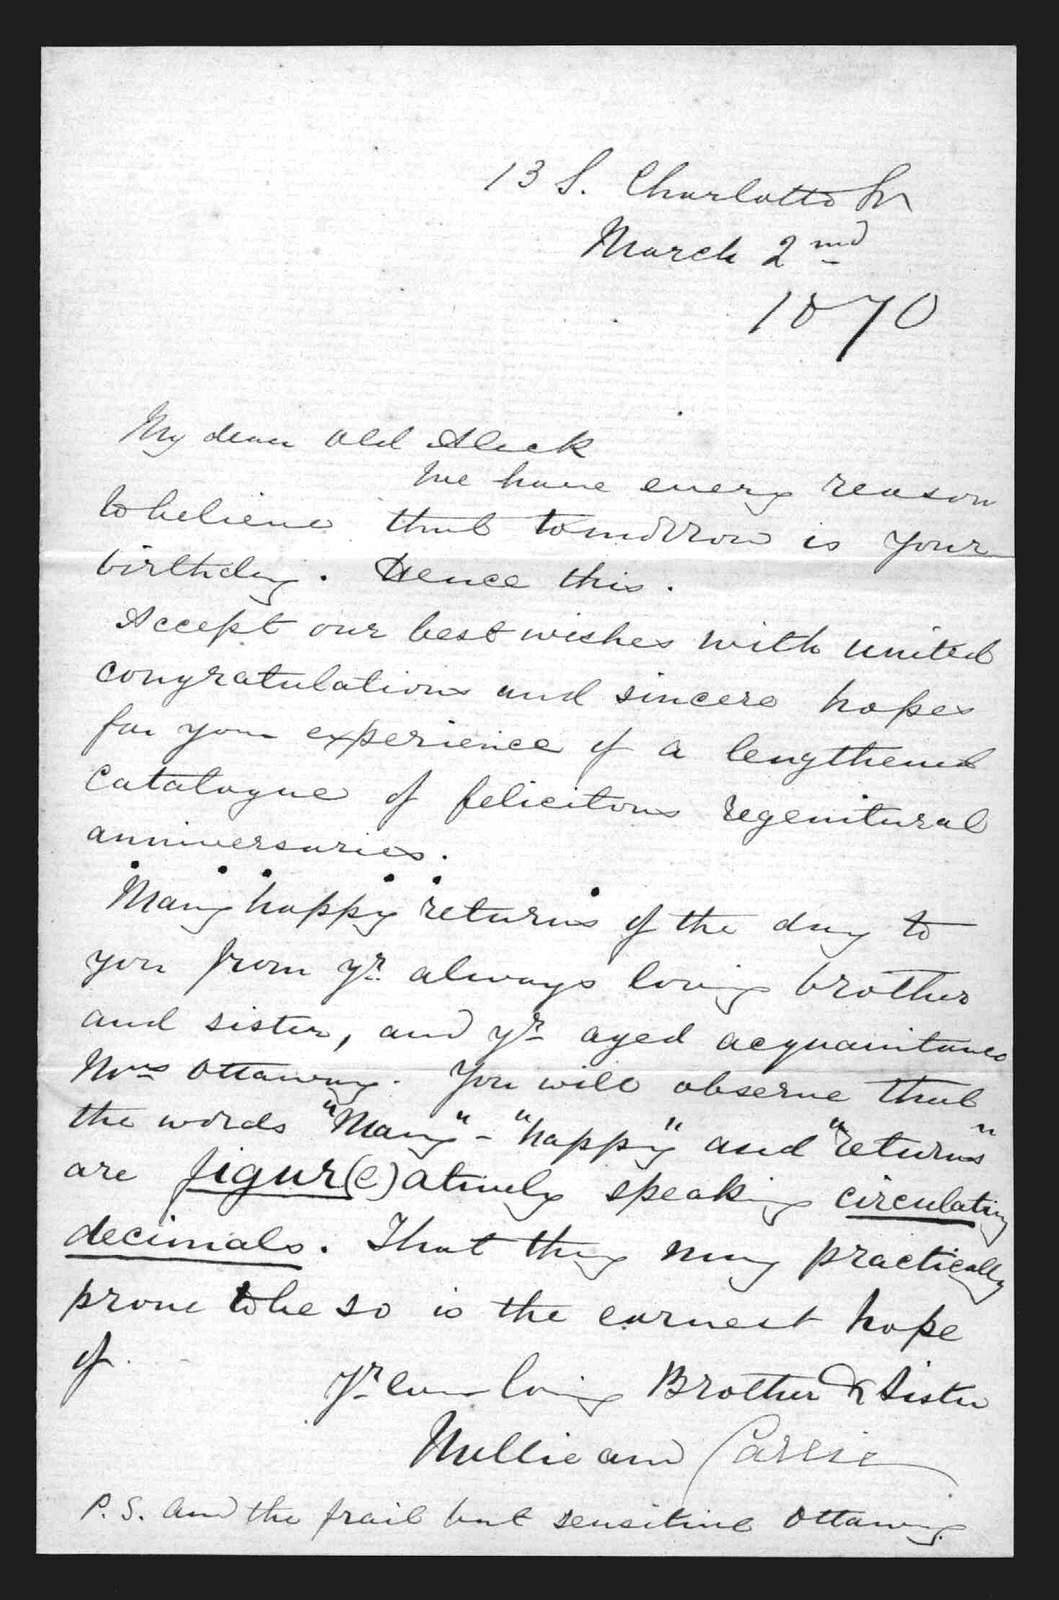 Letter from Melville Bell and Carrie Bell to Alexander Graham Bell, March 2, 1870